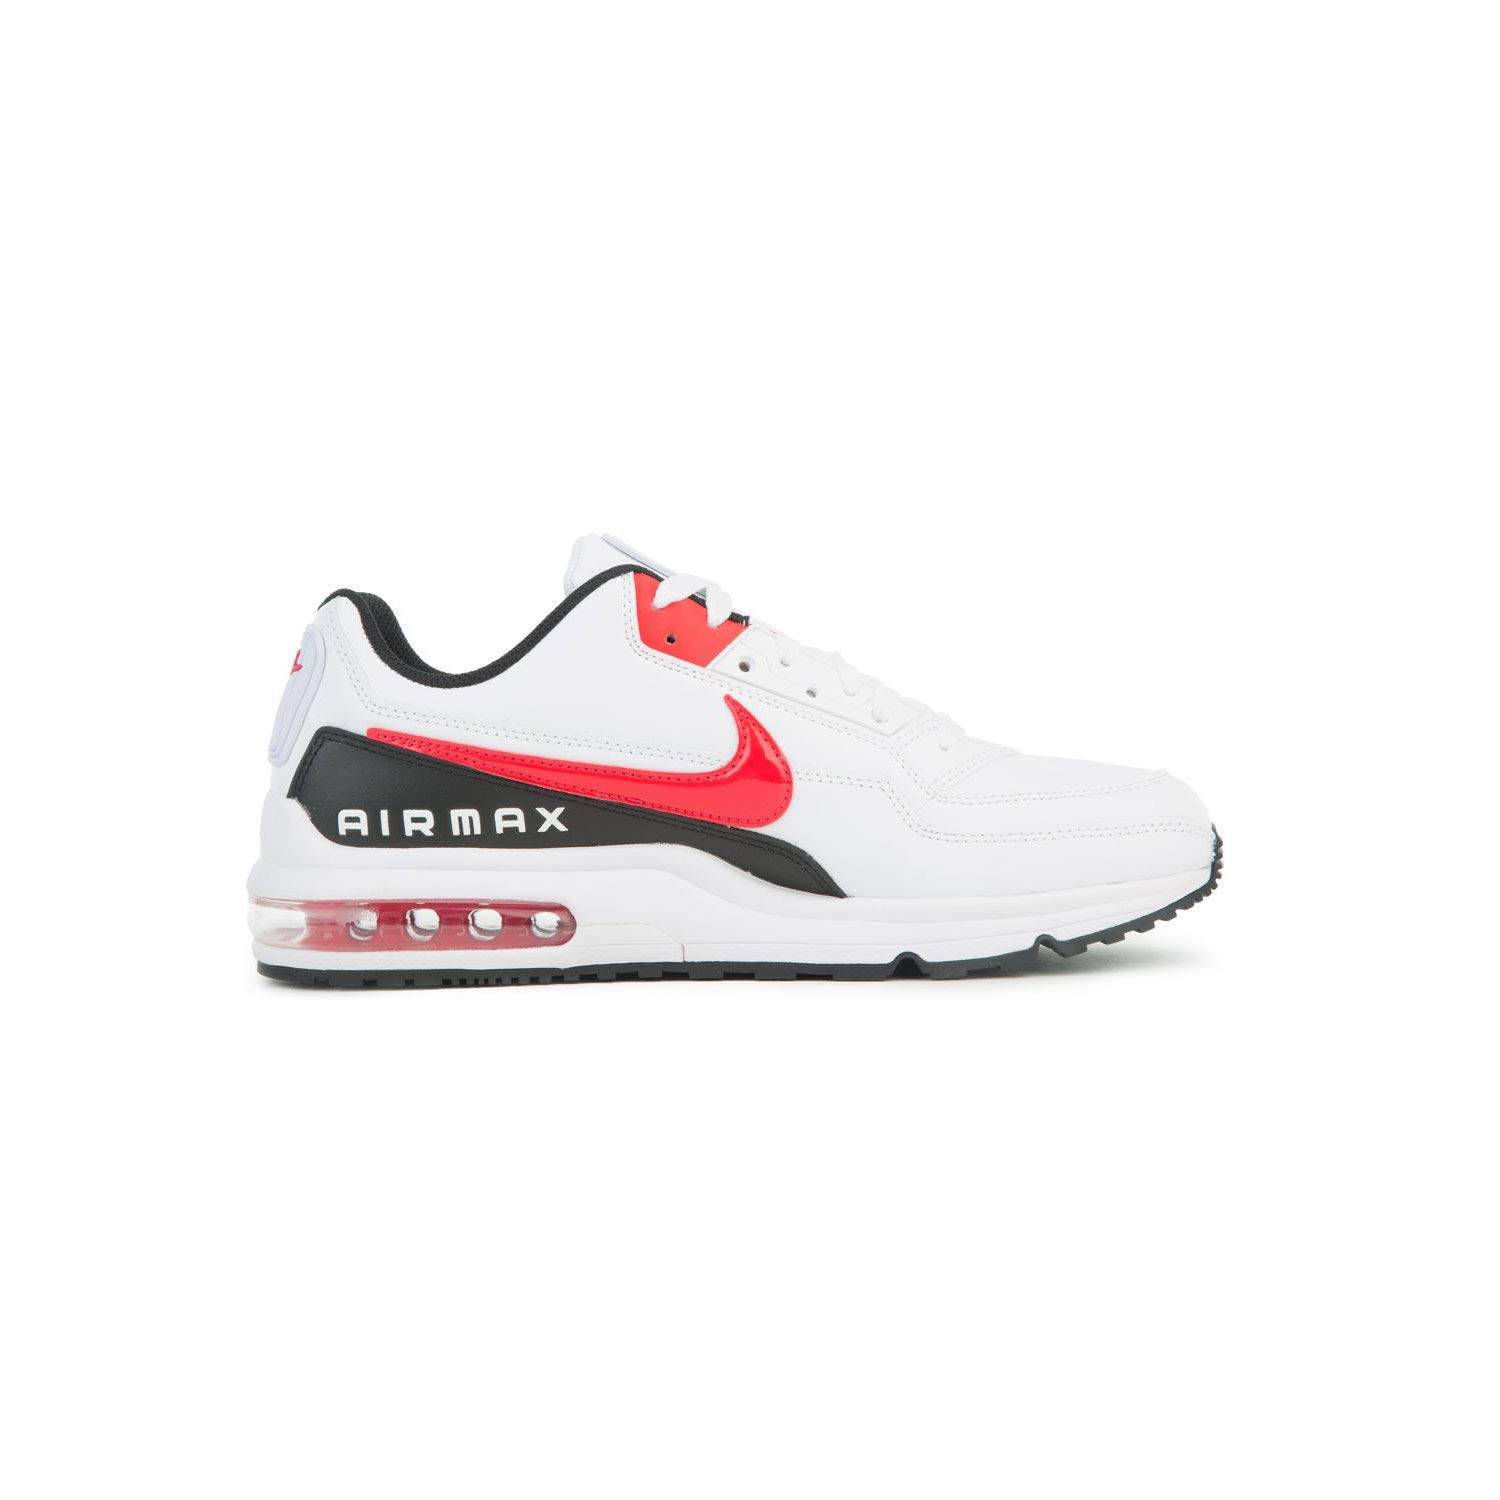 pretty nice 64744 52651 Galleon - NIKE Air Max LTD 3 Men s Shoes White University Red Black  Bv1171-100 (9 D(M) US)